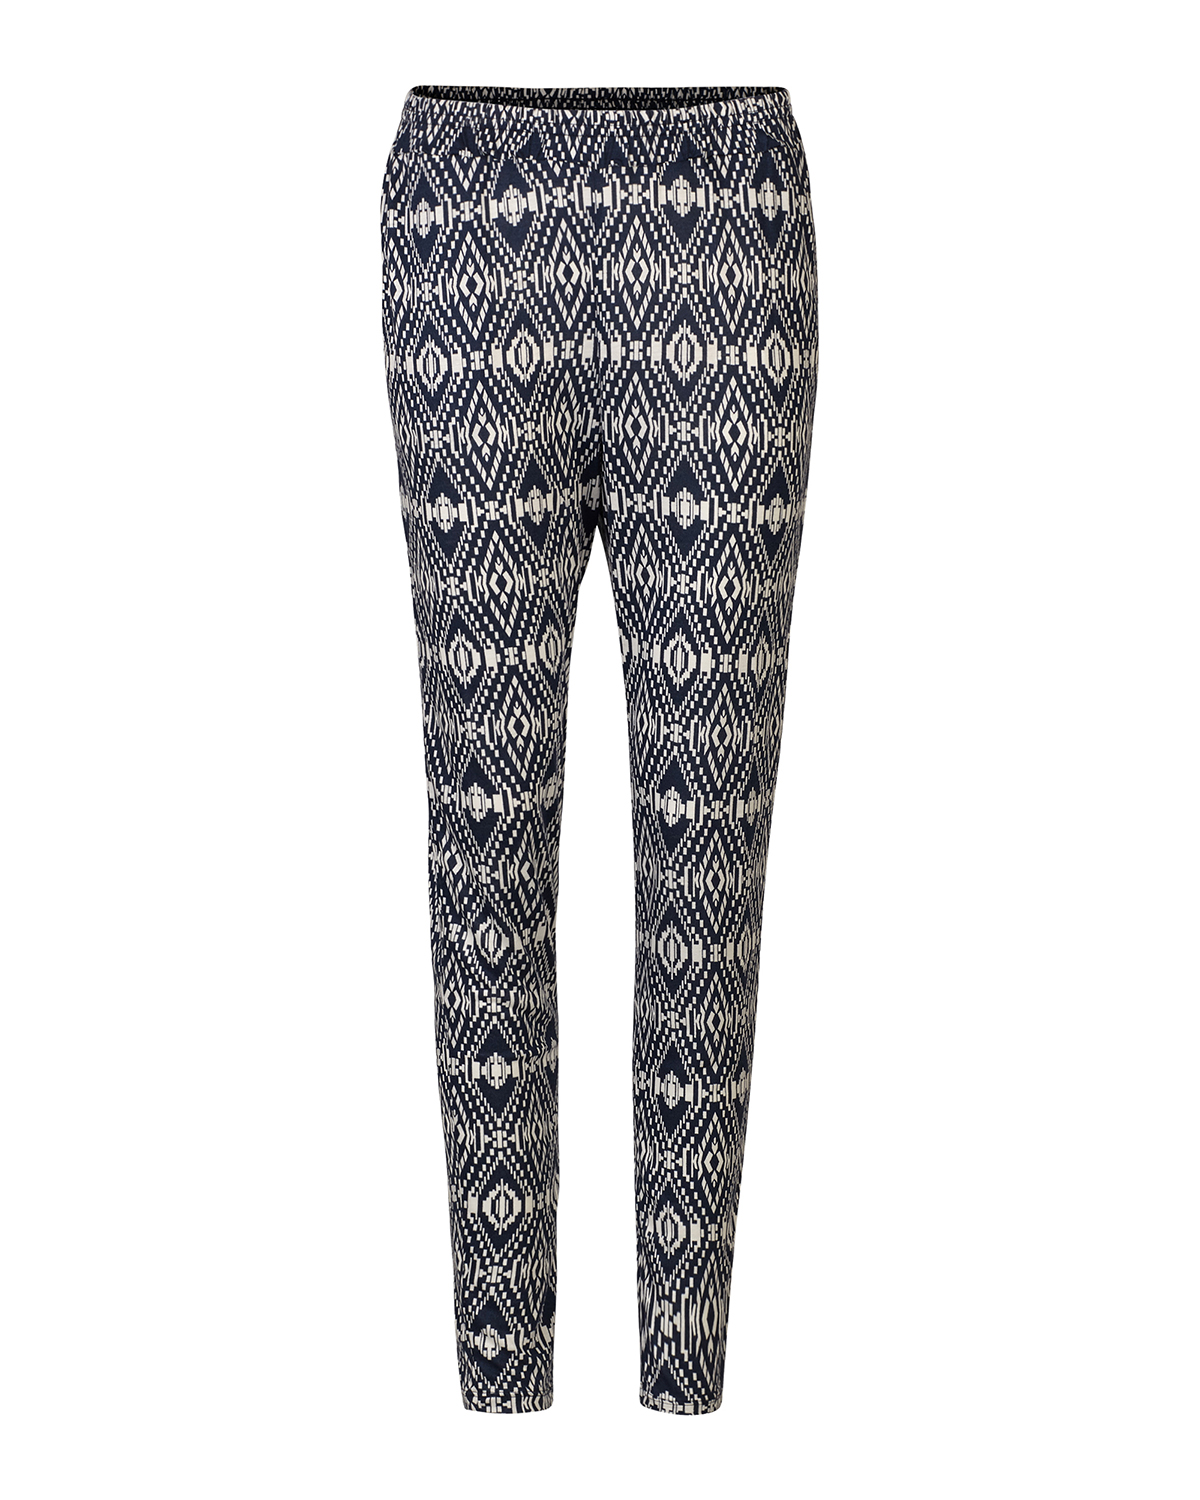 DAMES JERSEY ALL OVER PRINT BROEK | 79403009 WE Fashion